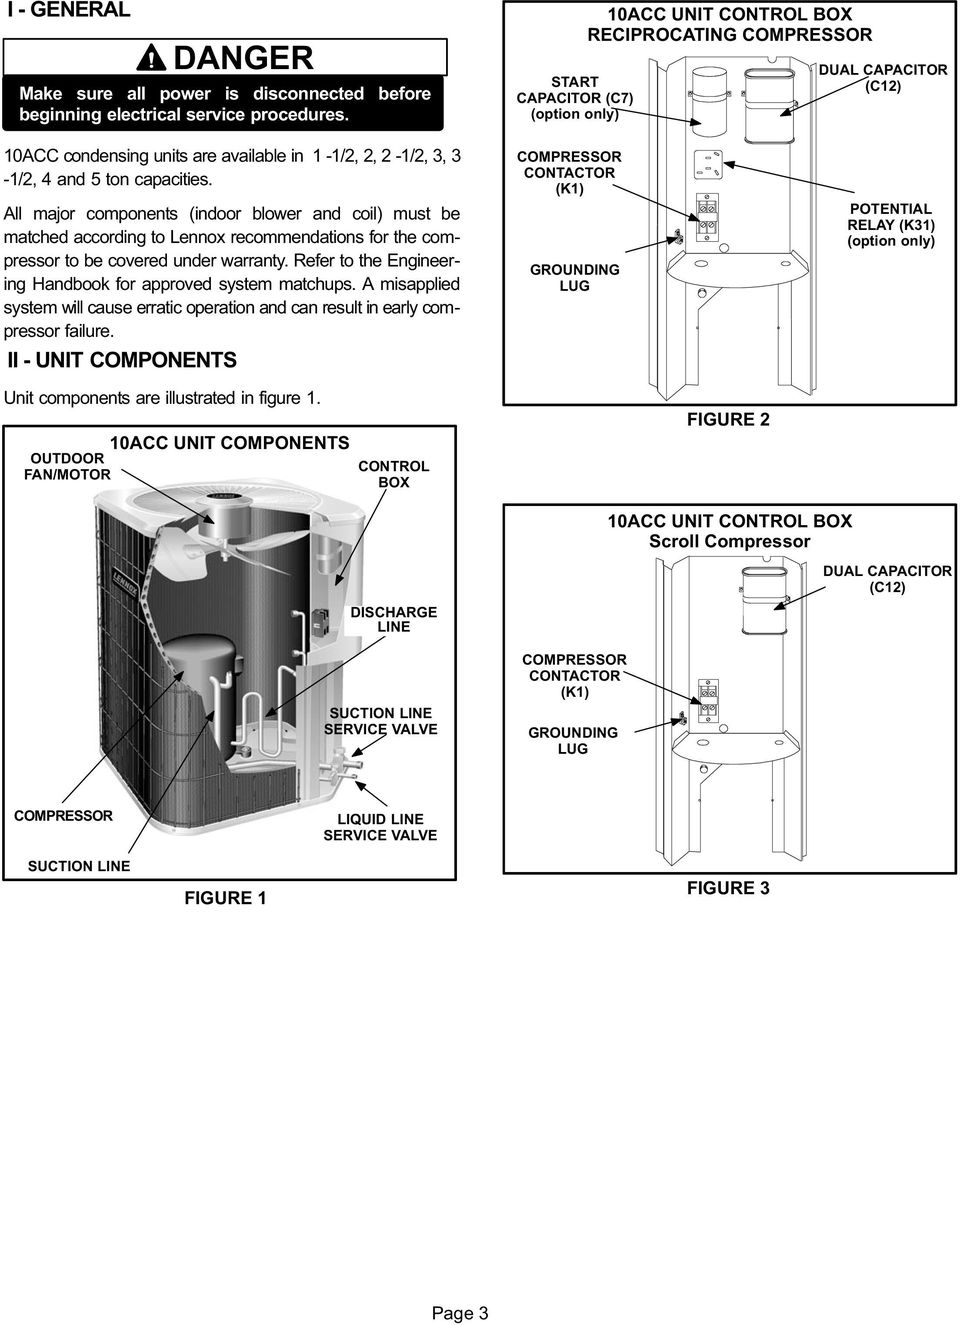 Page on Series Fan Powered Box Diagram